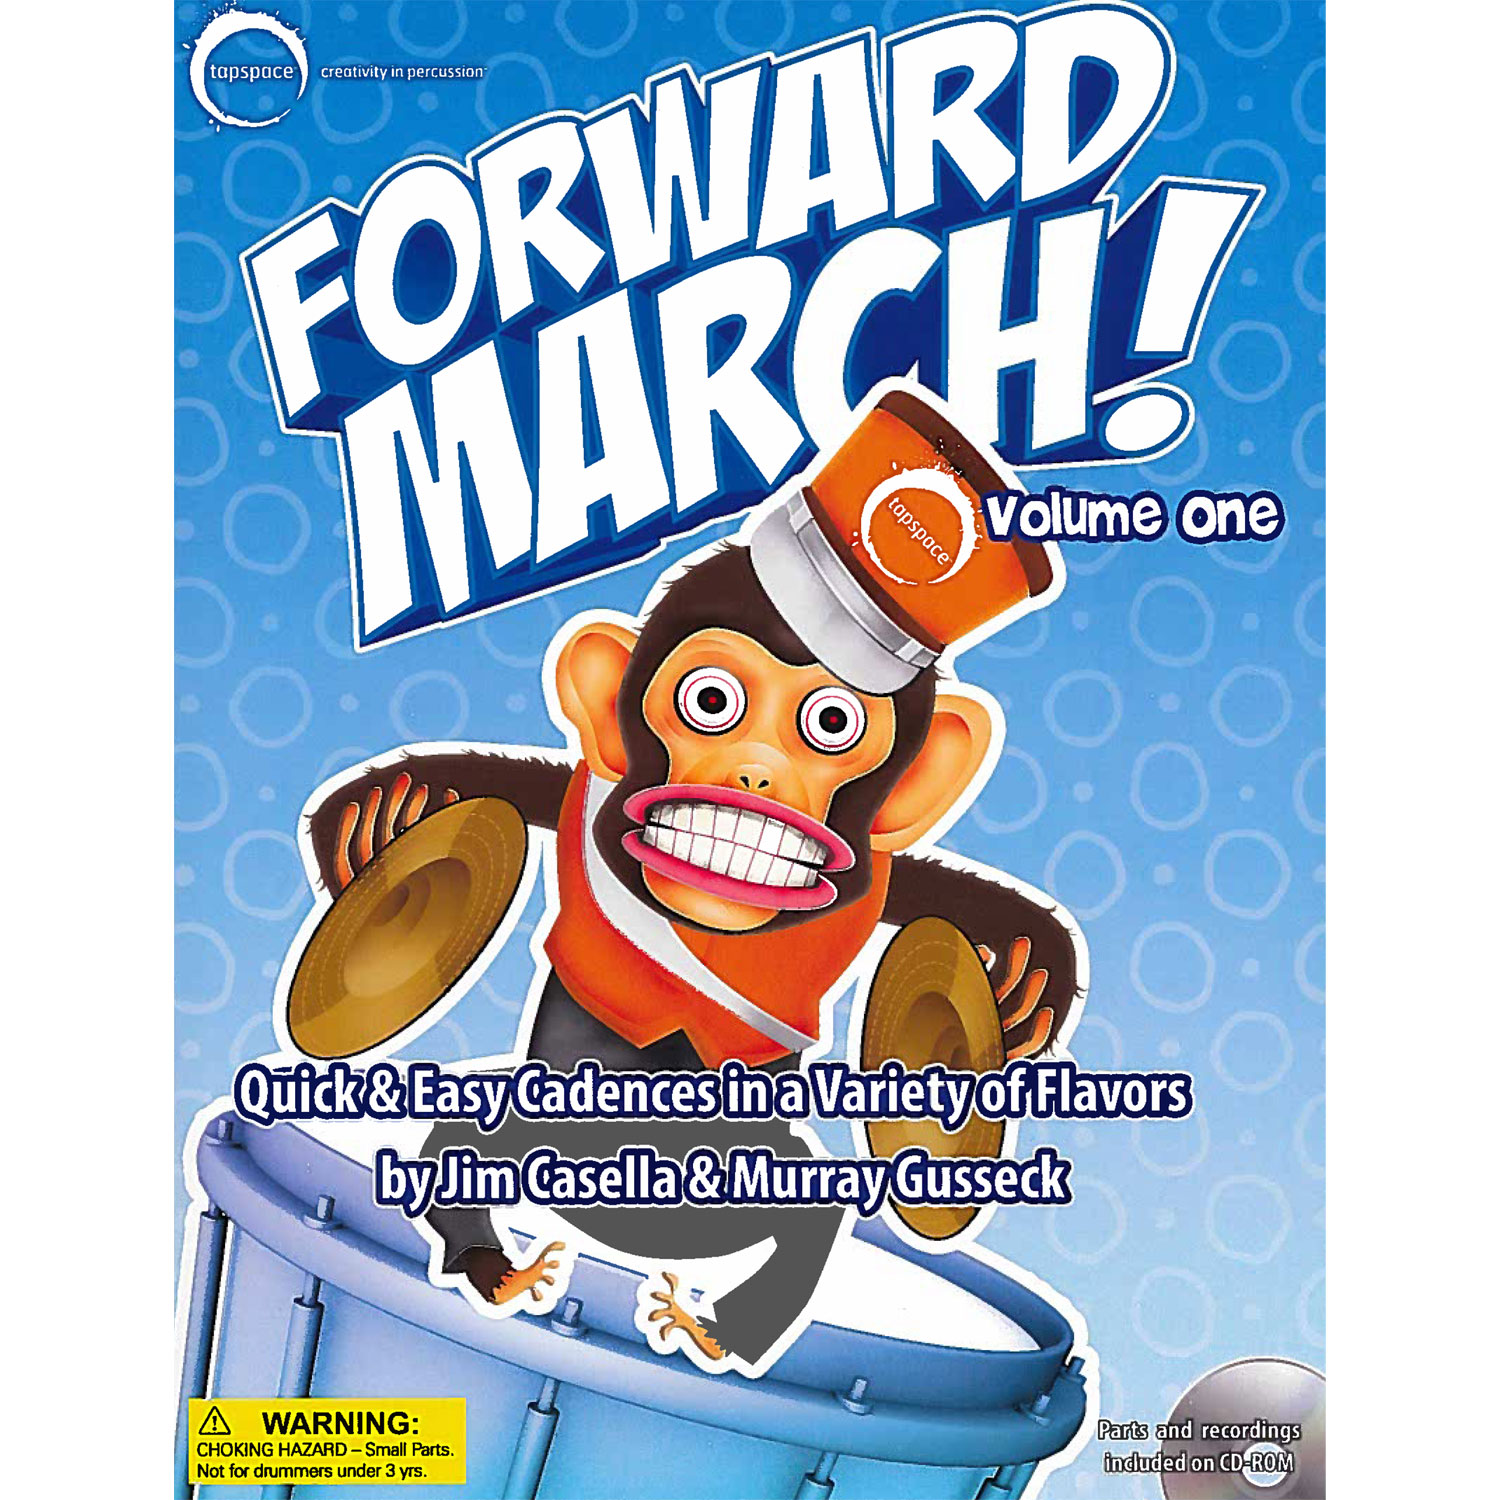 Forward March! Vol. 1 by Jim Casella & Murray Gusseck